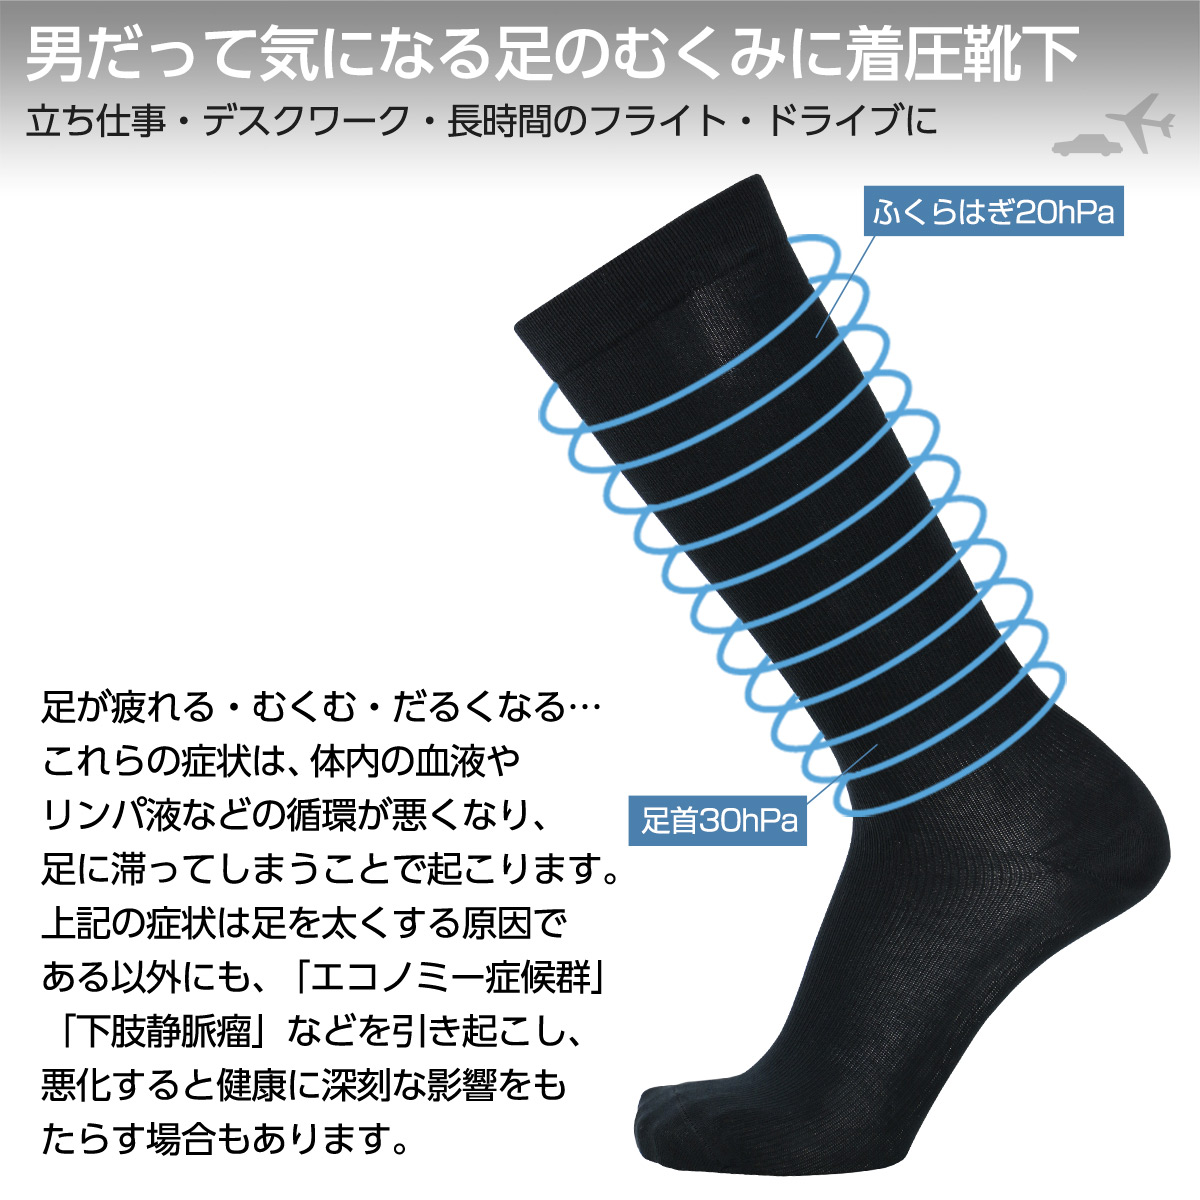 glanage original - Men's Compression Business socks  [ Length-41cm ]  / Calf: 15hpa; Ankle: 30hpa / Arch Fit Support / Right and Left design / antibacterial & Deodorant / Made in Japan / 2901-001 / All items - Point x 10 !!